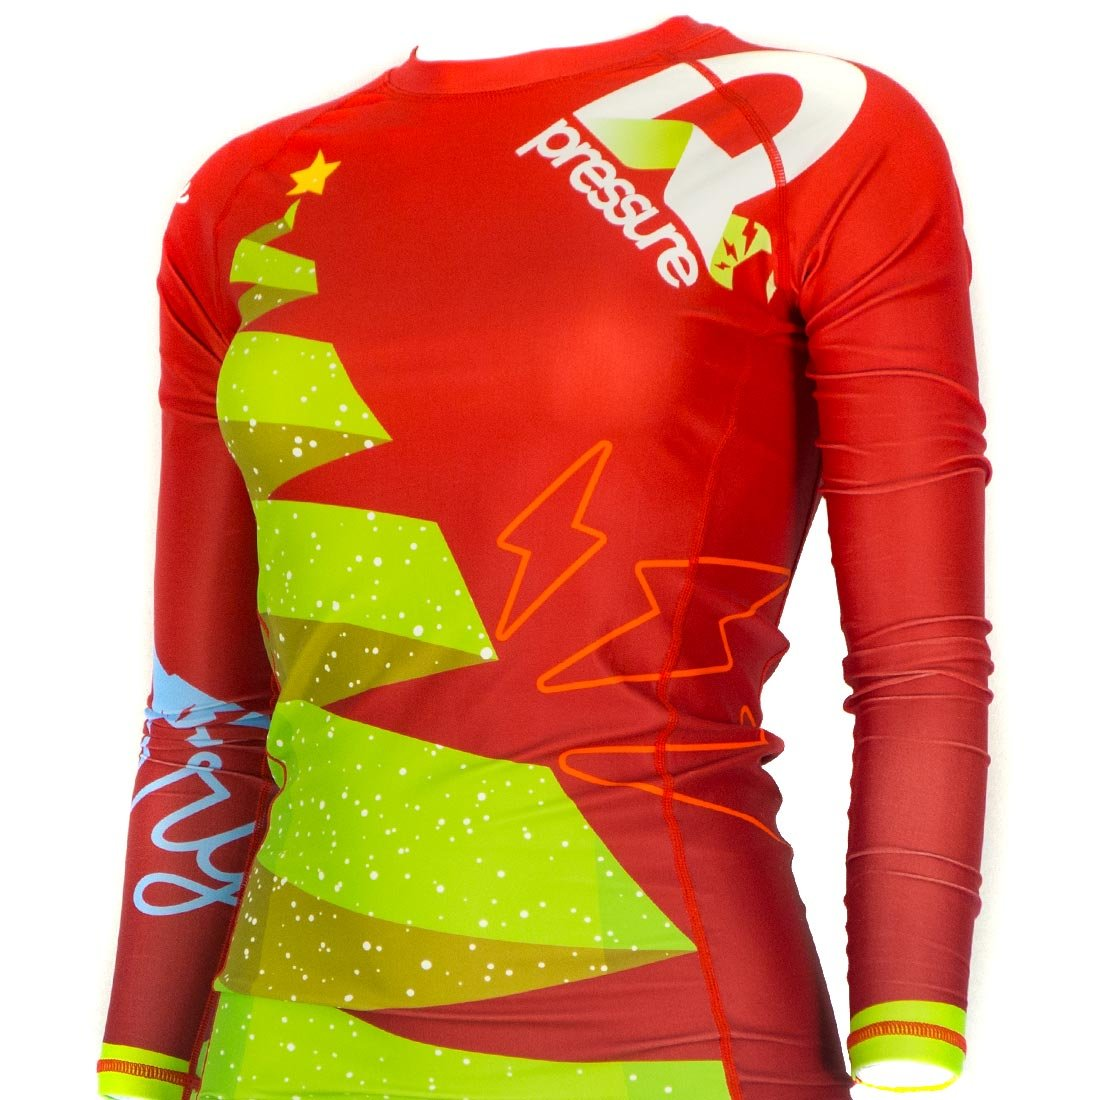 Pressure Grappling Women's Premium BJJ Long Sleeve Rash Guard with Lockdown Band (Wonderland, Extra Small) by Pressure Grappling